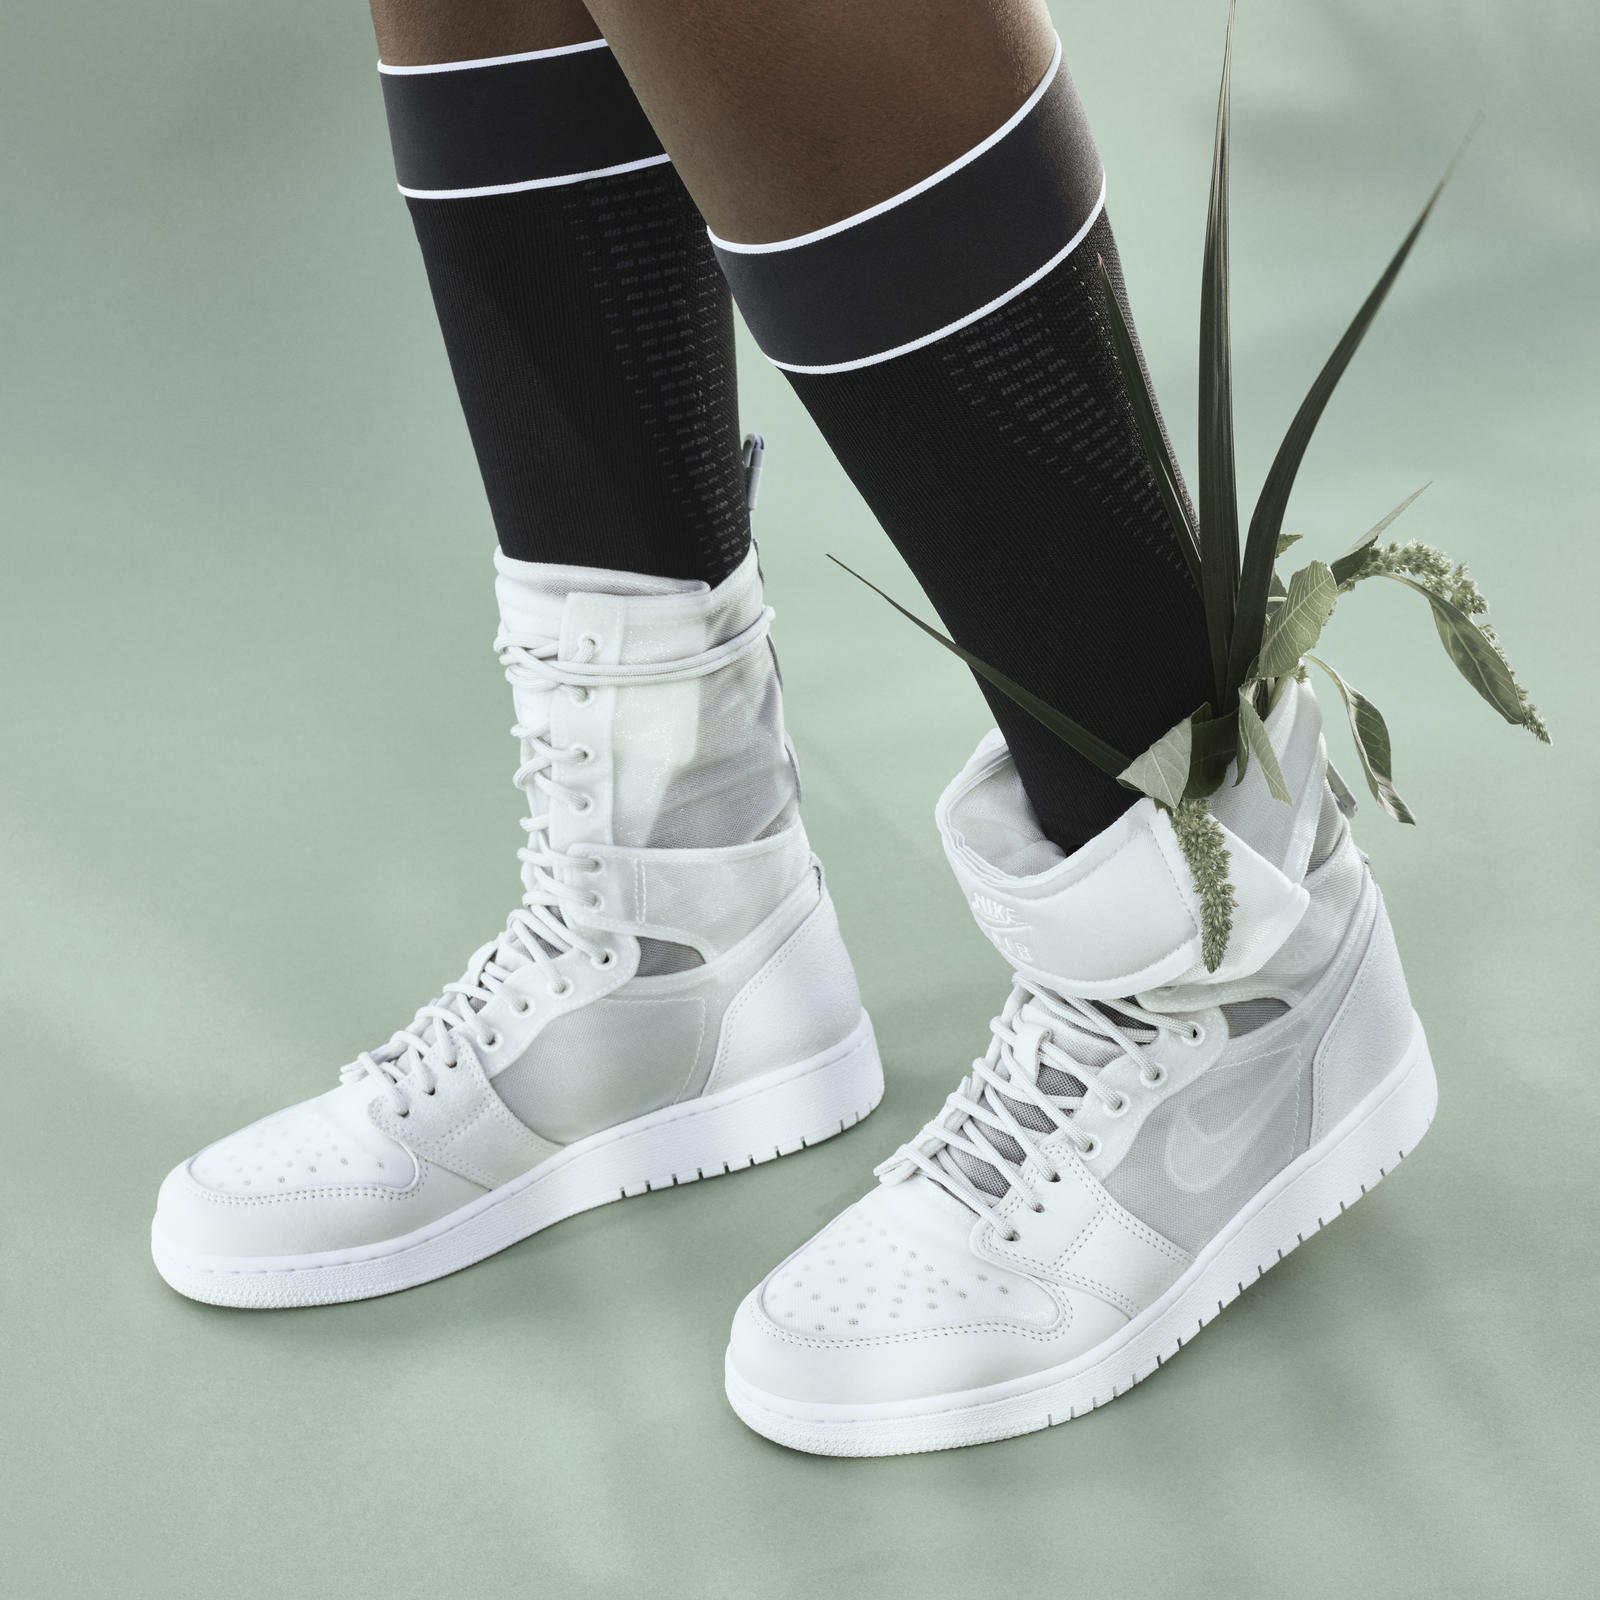 7b1e23c380 The 1 Reimagined – The women of Nike redesign the Air Jordan 1 and ...